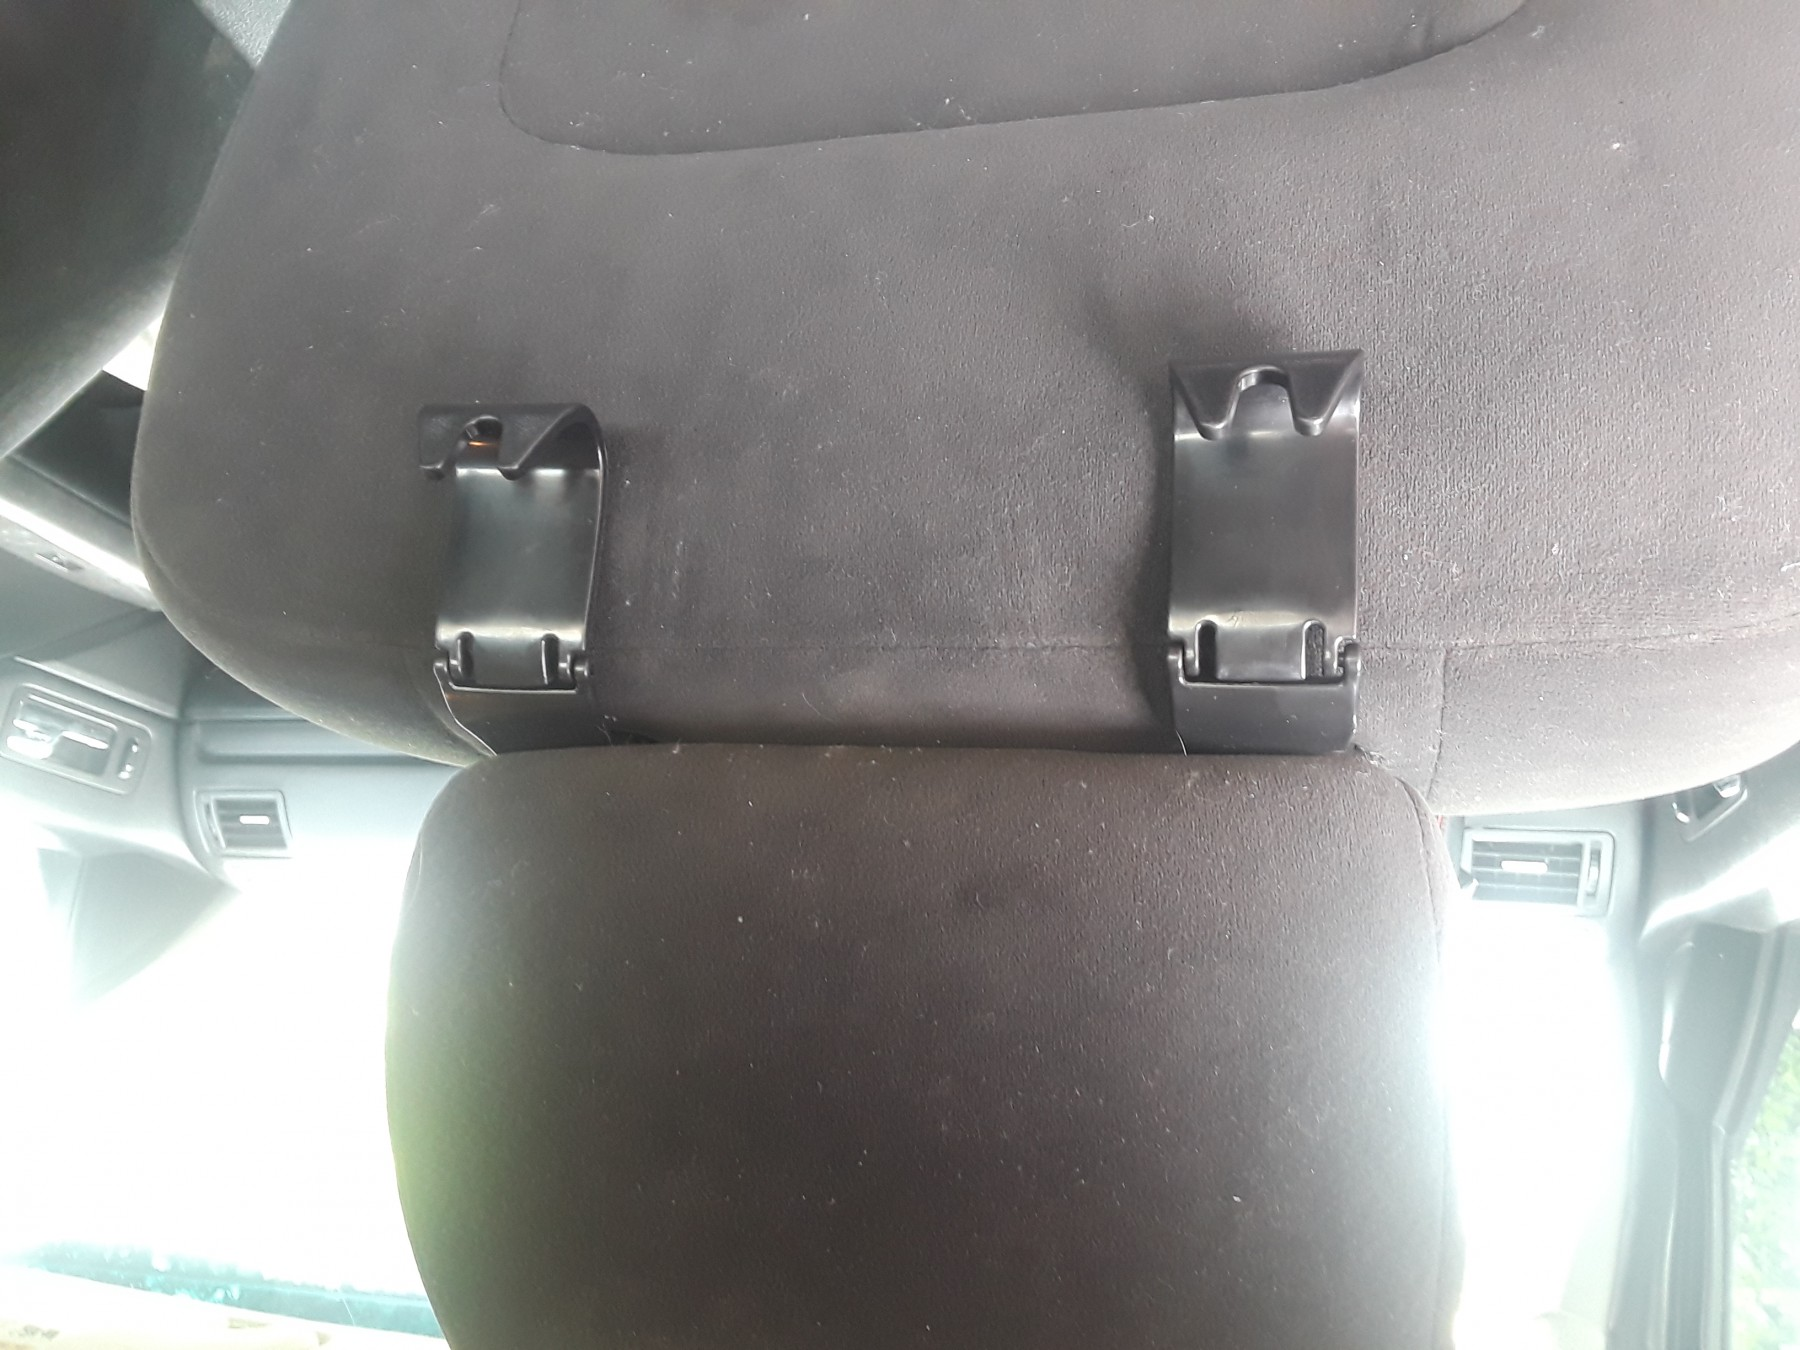 Car purse hooks